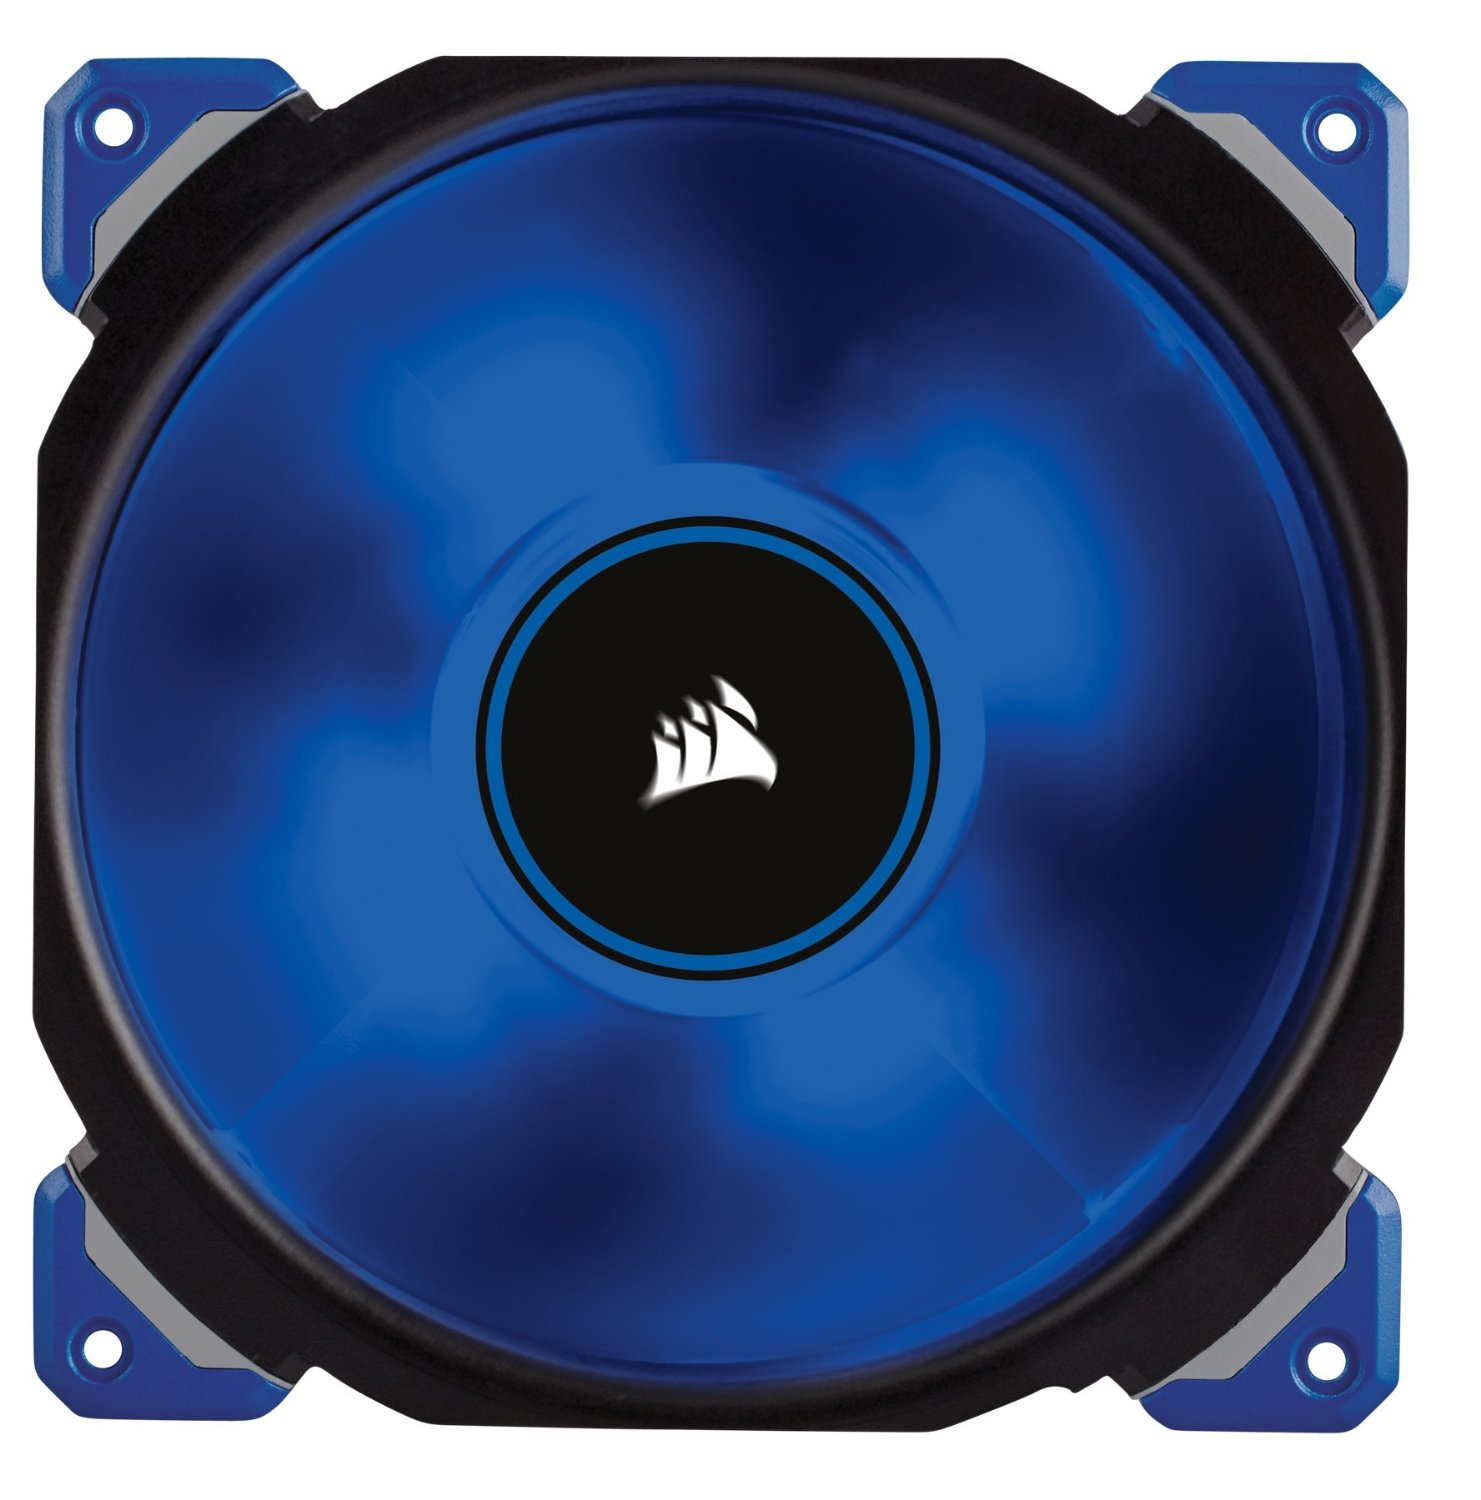 Corsair ML140 Pro LED, Blue, 140mm Premium Magnetic Levitation Cooling Fan CO-9050048-WW - CO-9050048-WW